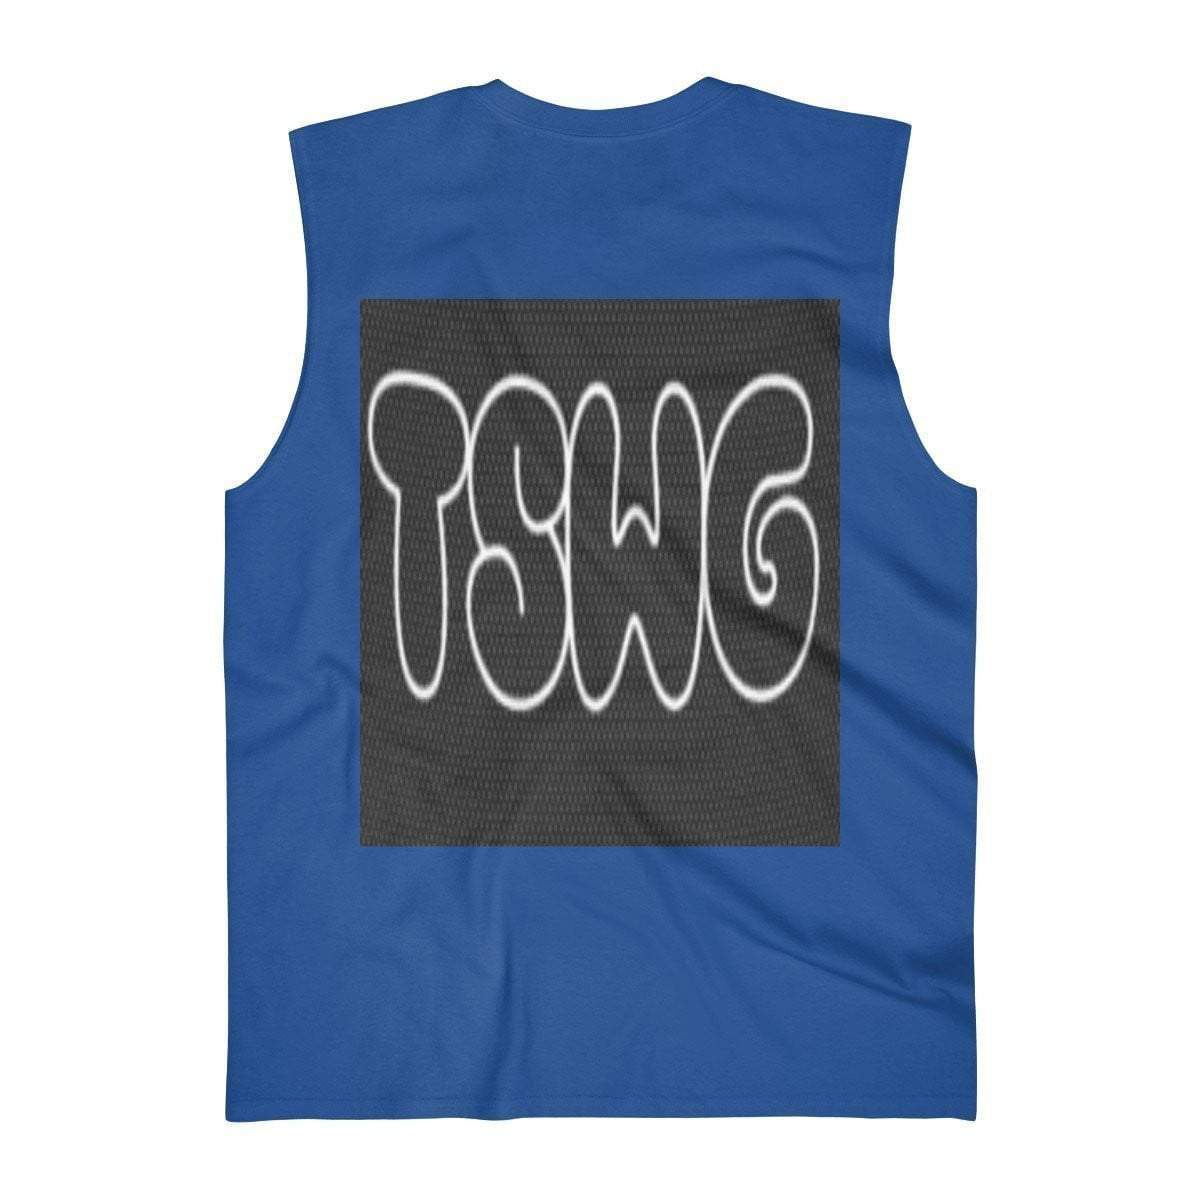 Back Printed TSWG (Tough Smooth Well Groomed) Men's Ultra Cotton Sleeveless Tank Voluptuous (+) Size Available - TFC&H Co.